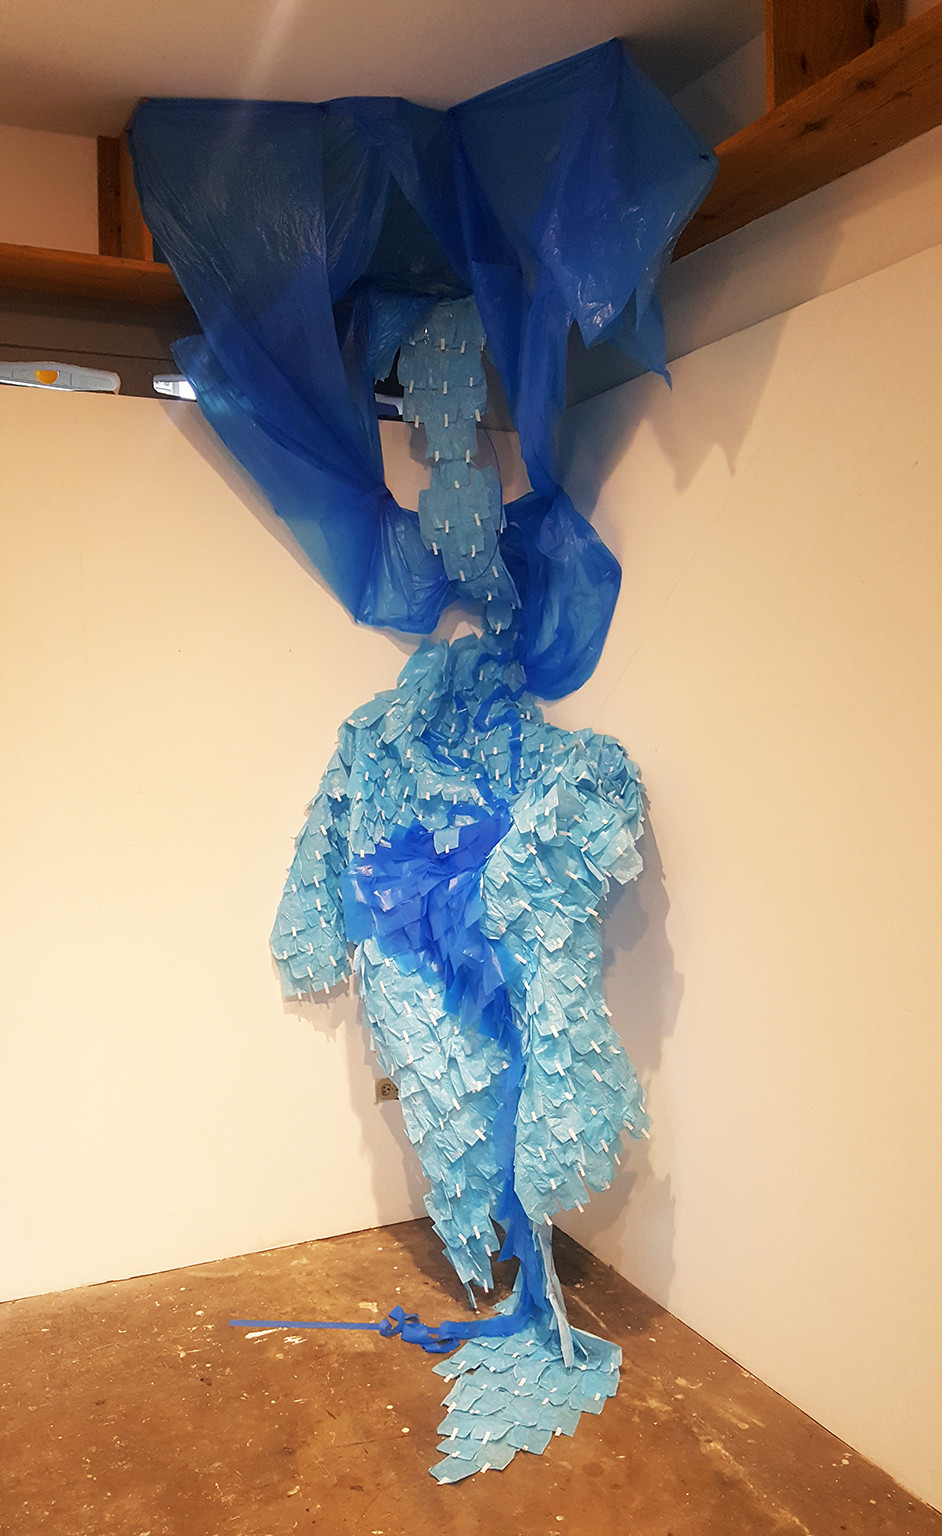 One of two untitled installations Dominique Hunter made using a collection of sanitary napkin wrappers and garbage bags